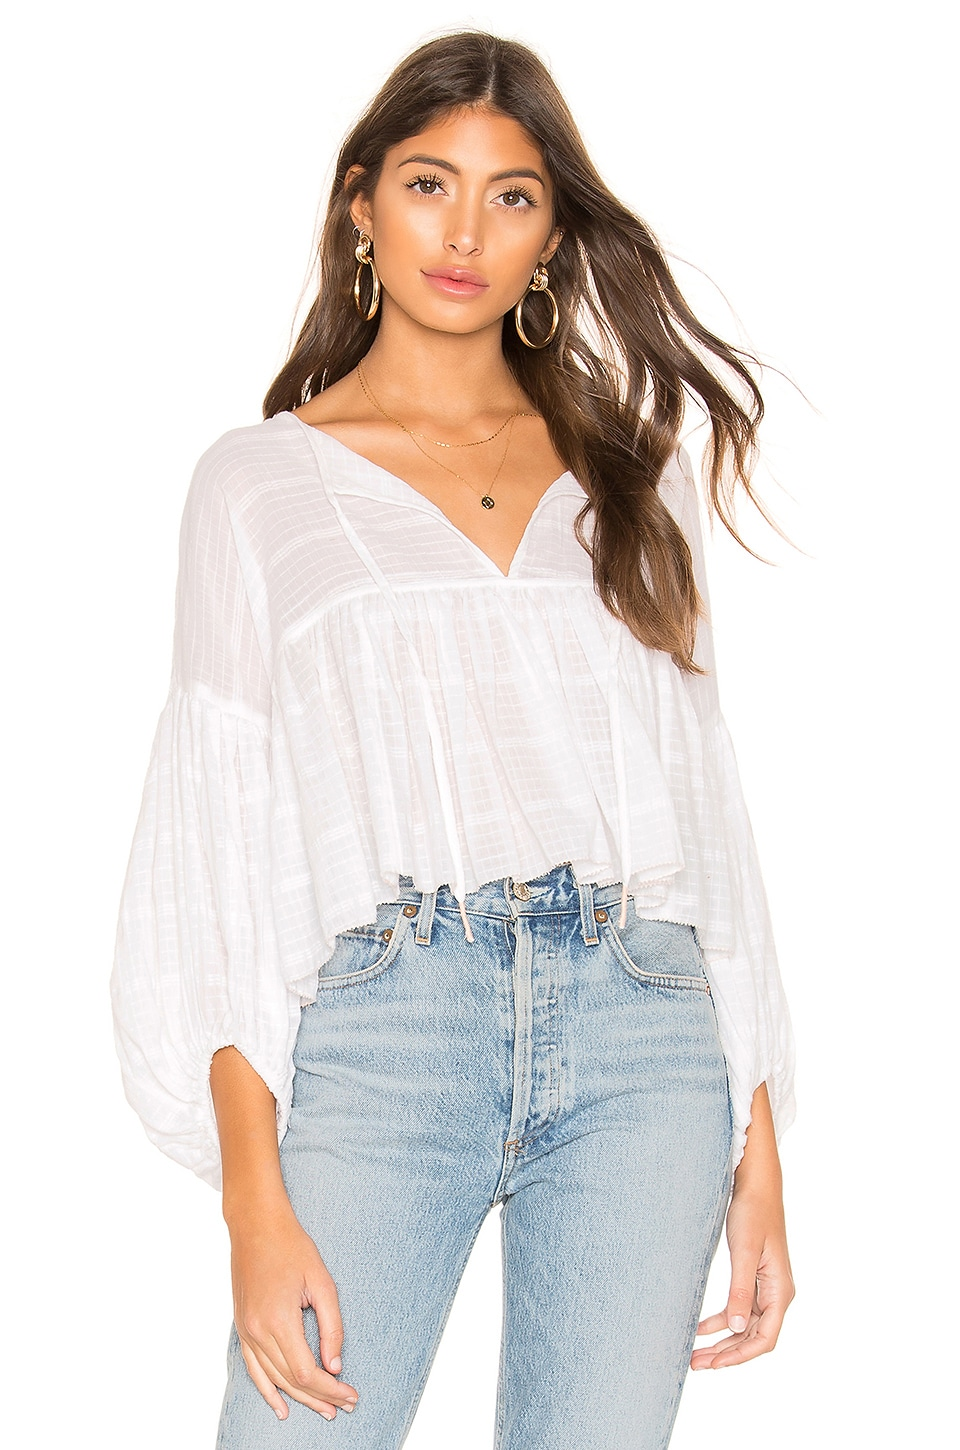 Free People Tops FREE PEOPLE BEAUMONT MEWS BLOUSE IN WHITE.